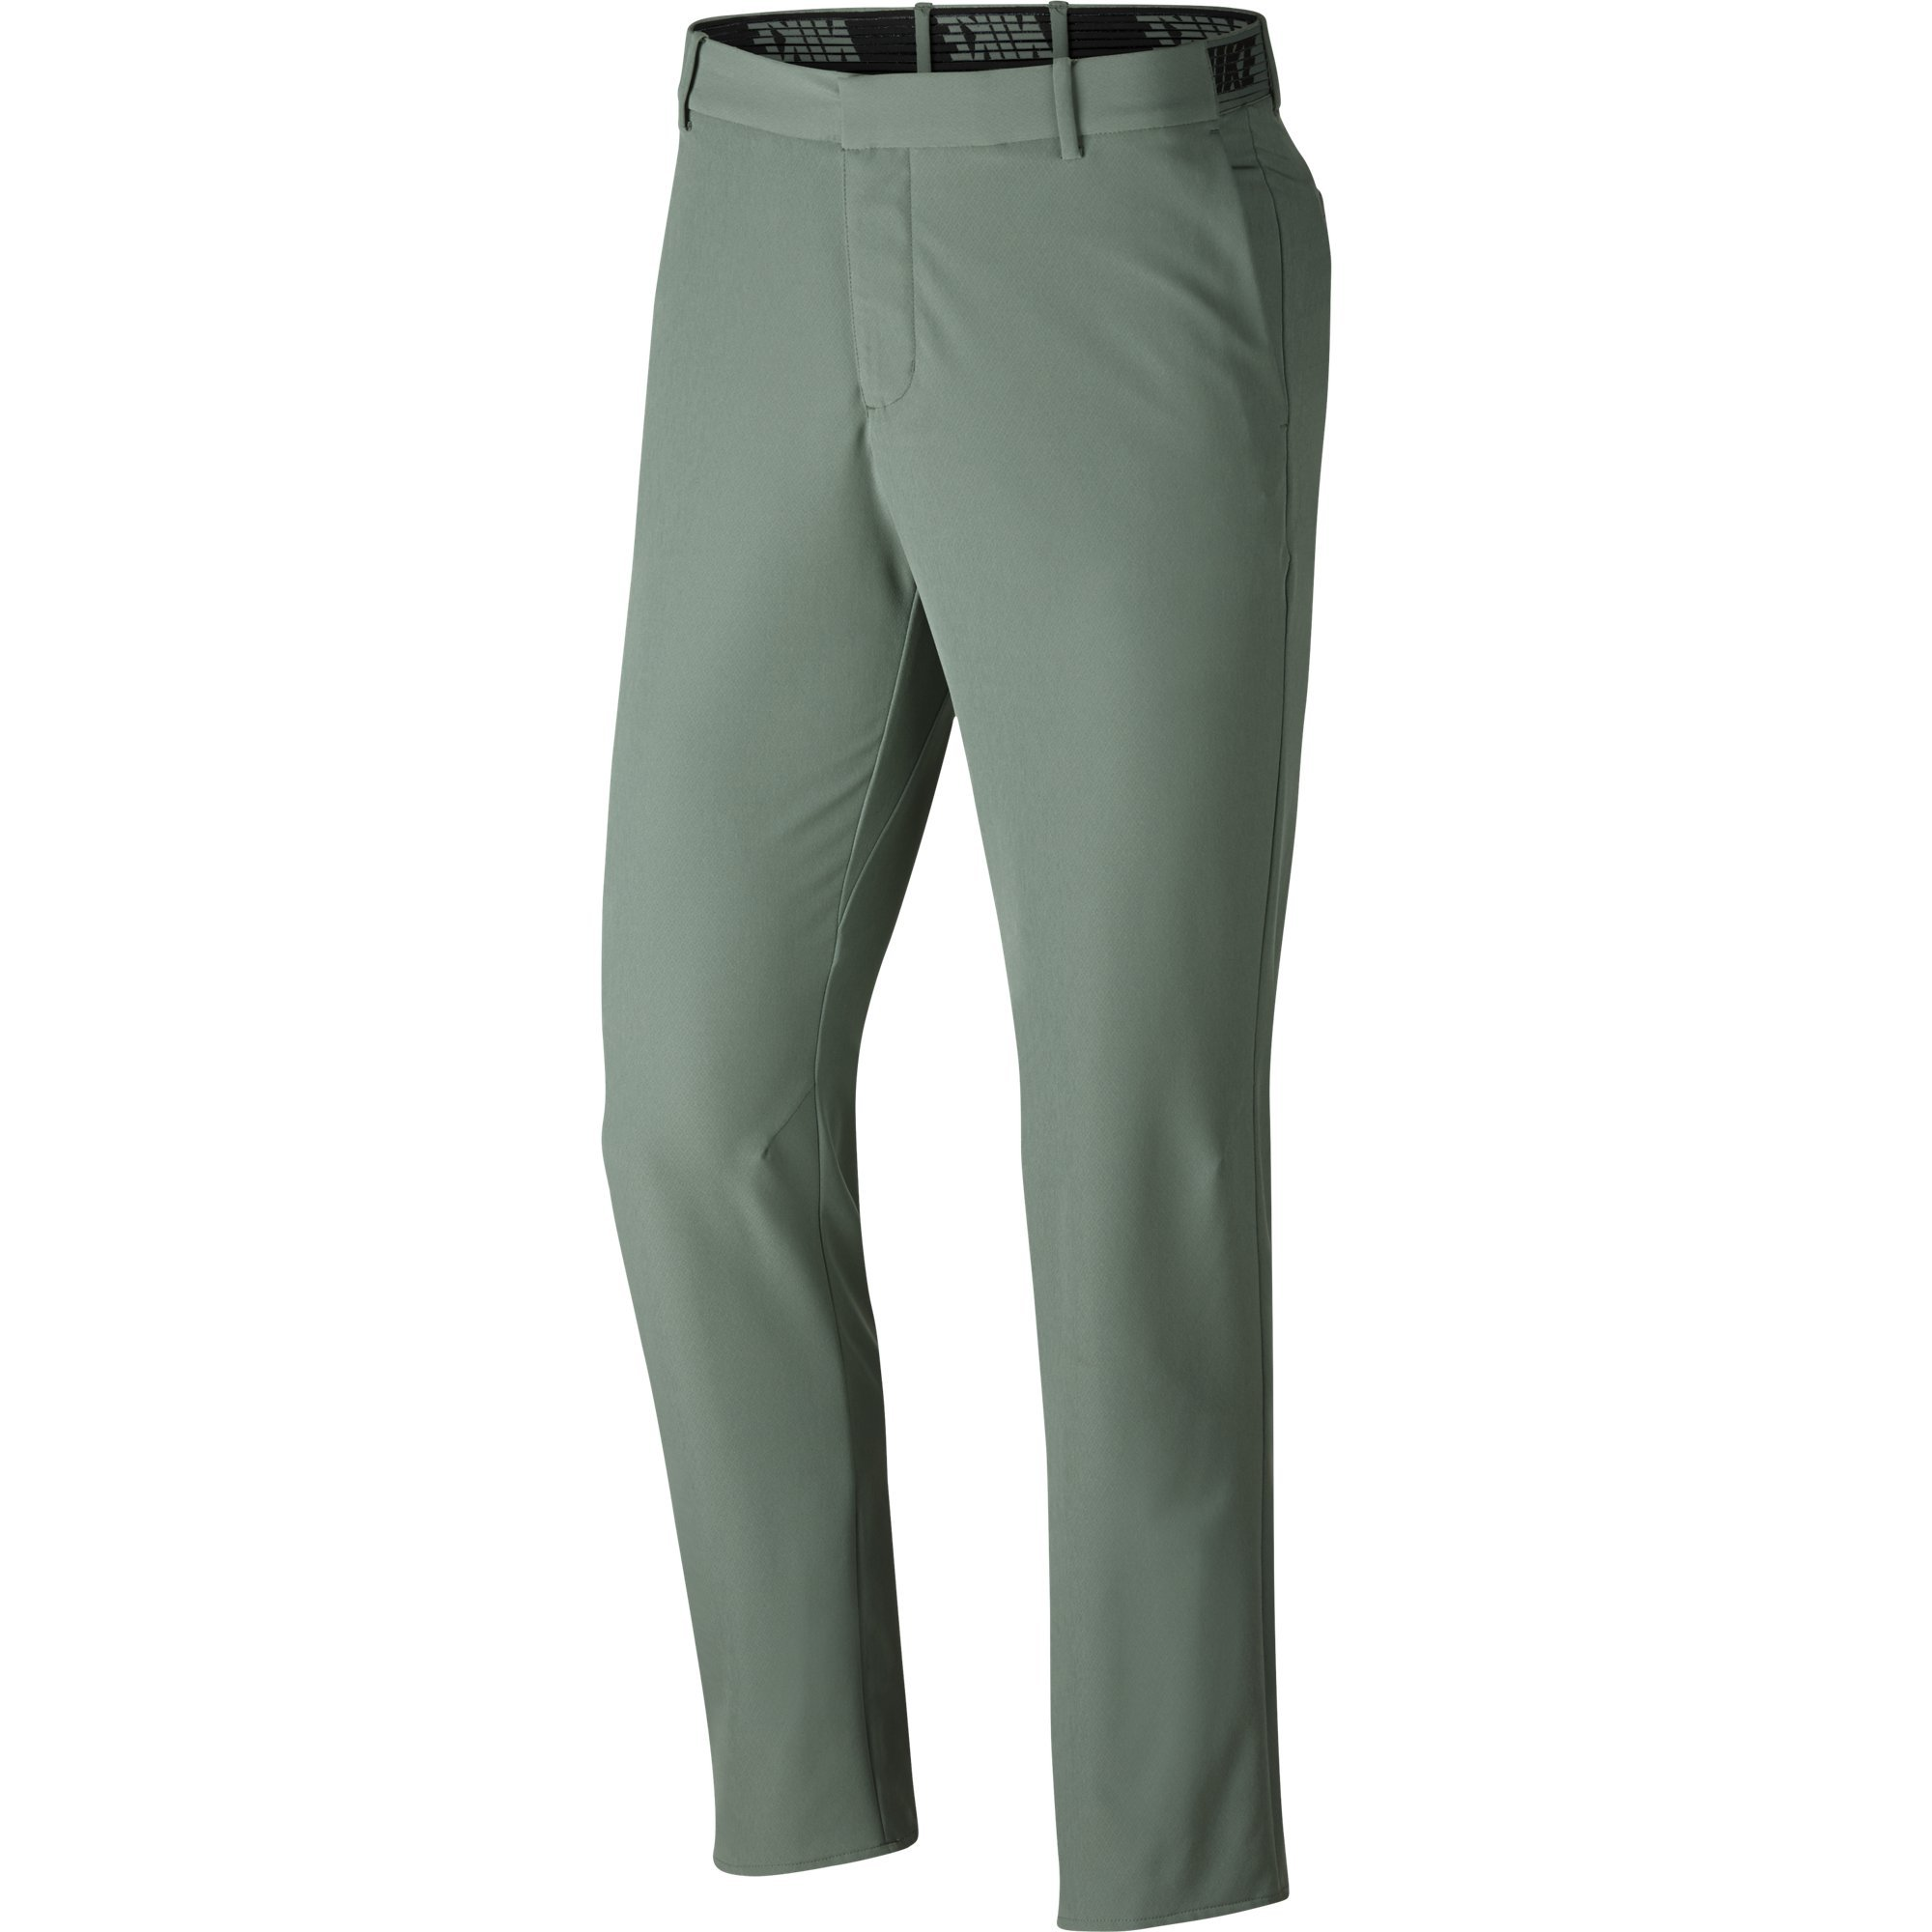 NIKE Men's Flex Slim Golf Pants, Clay Green/Black, Size 32/32